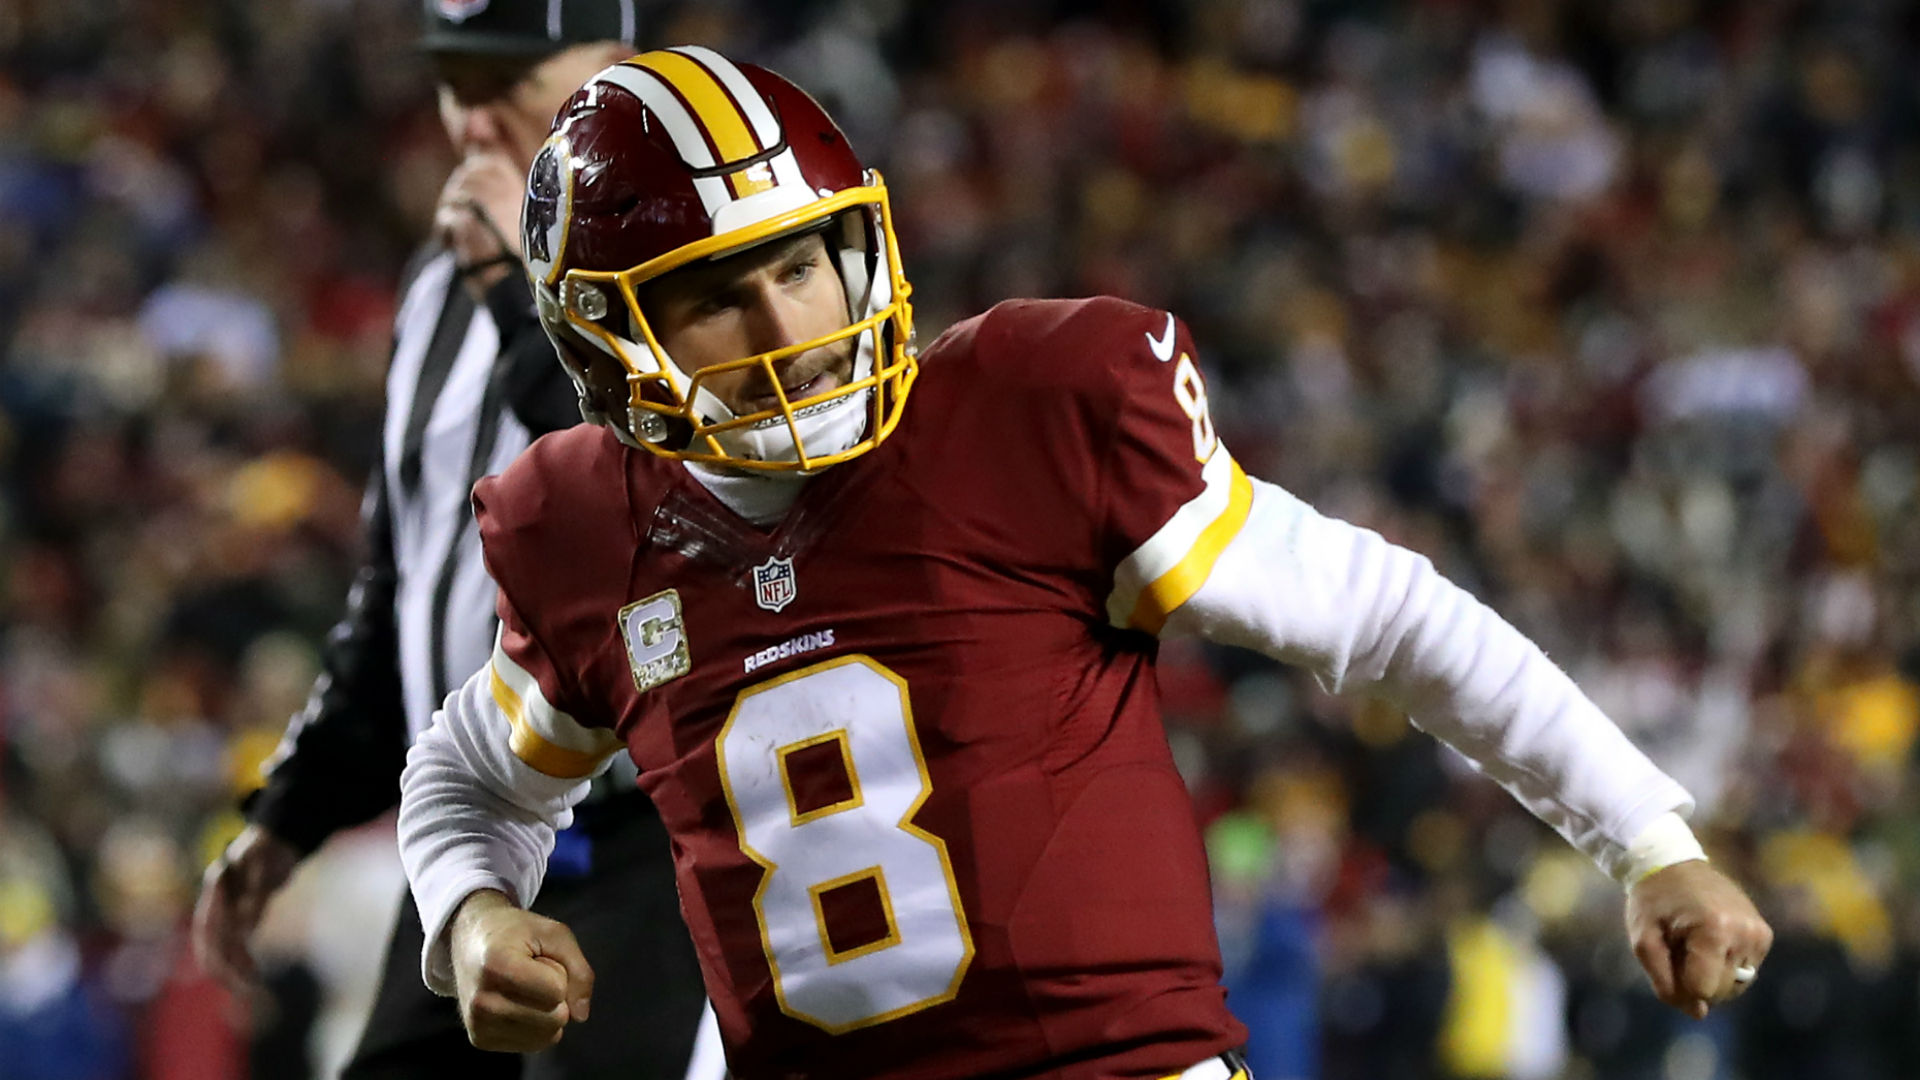 Rodgers, Packers drop 4th in row, routed 42-24 by Redskins